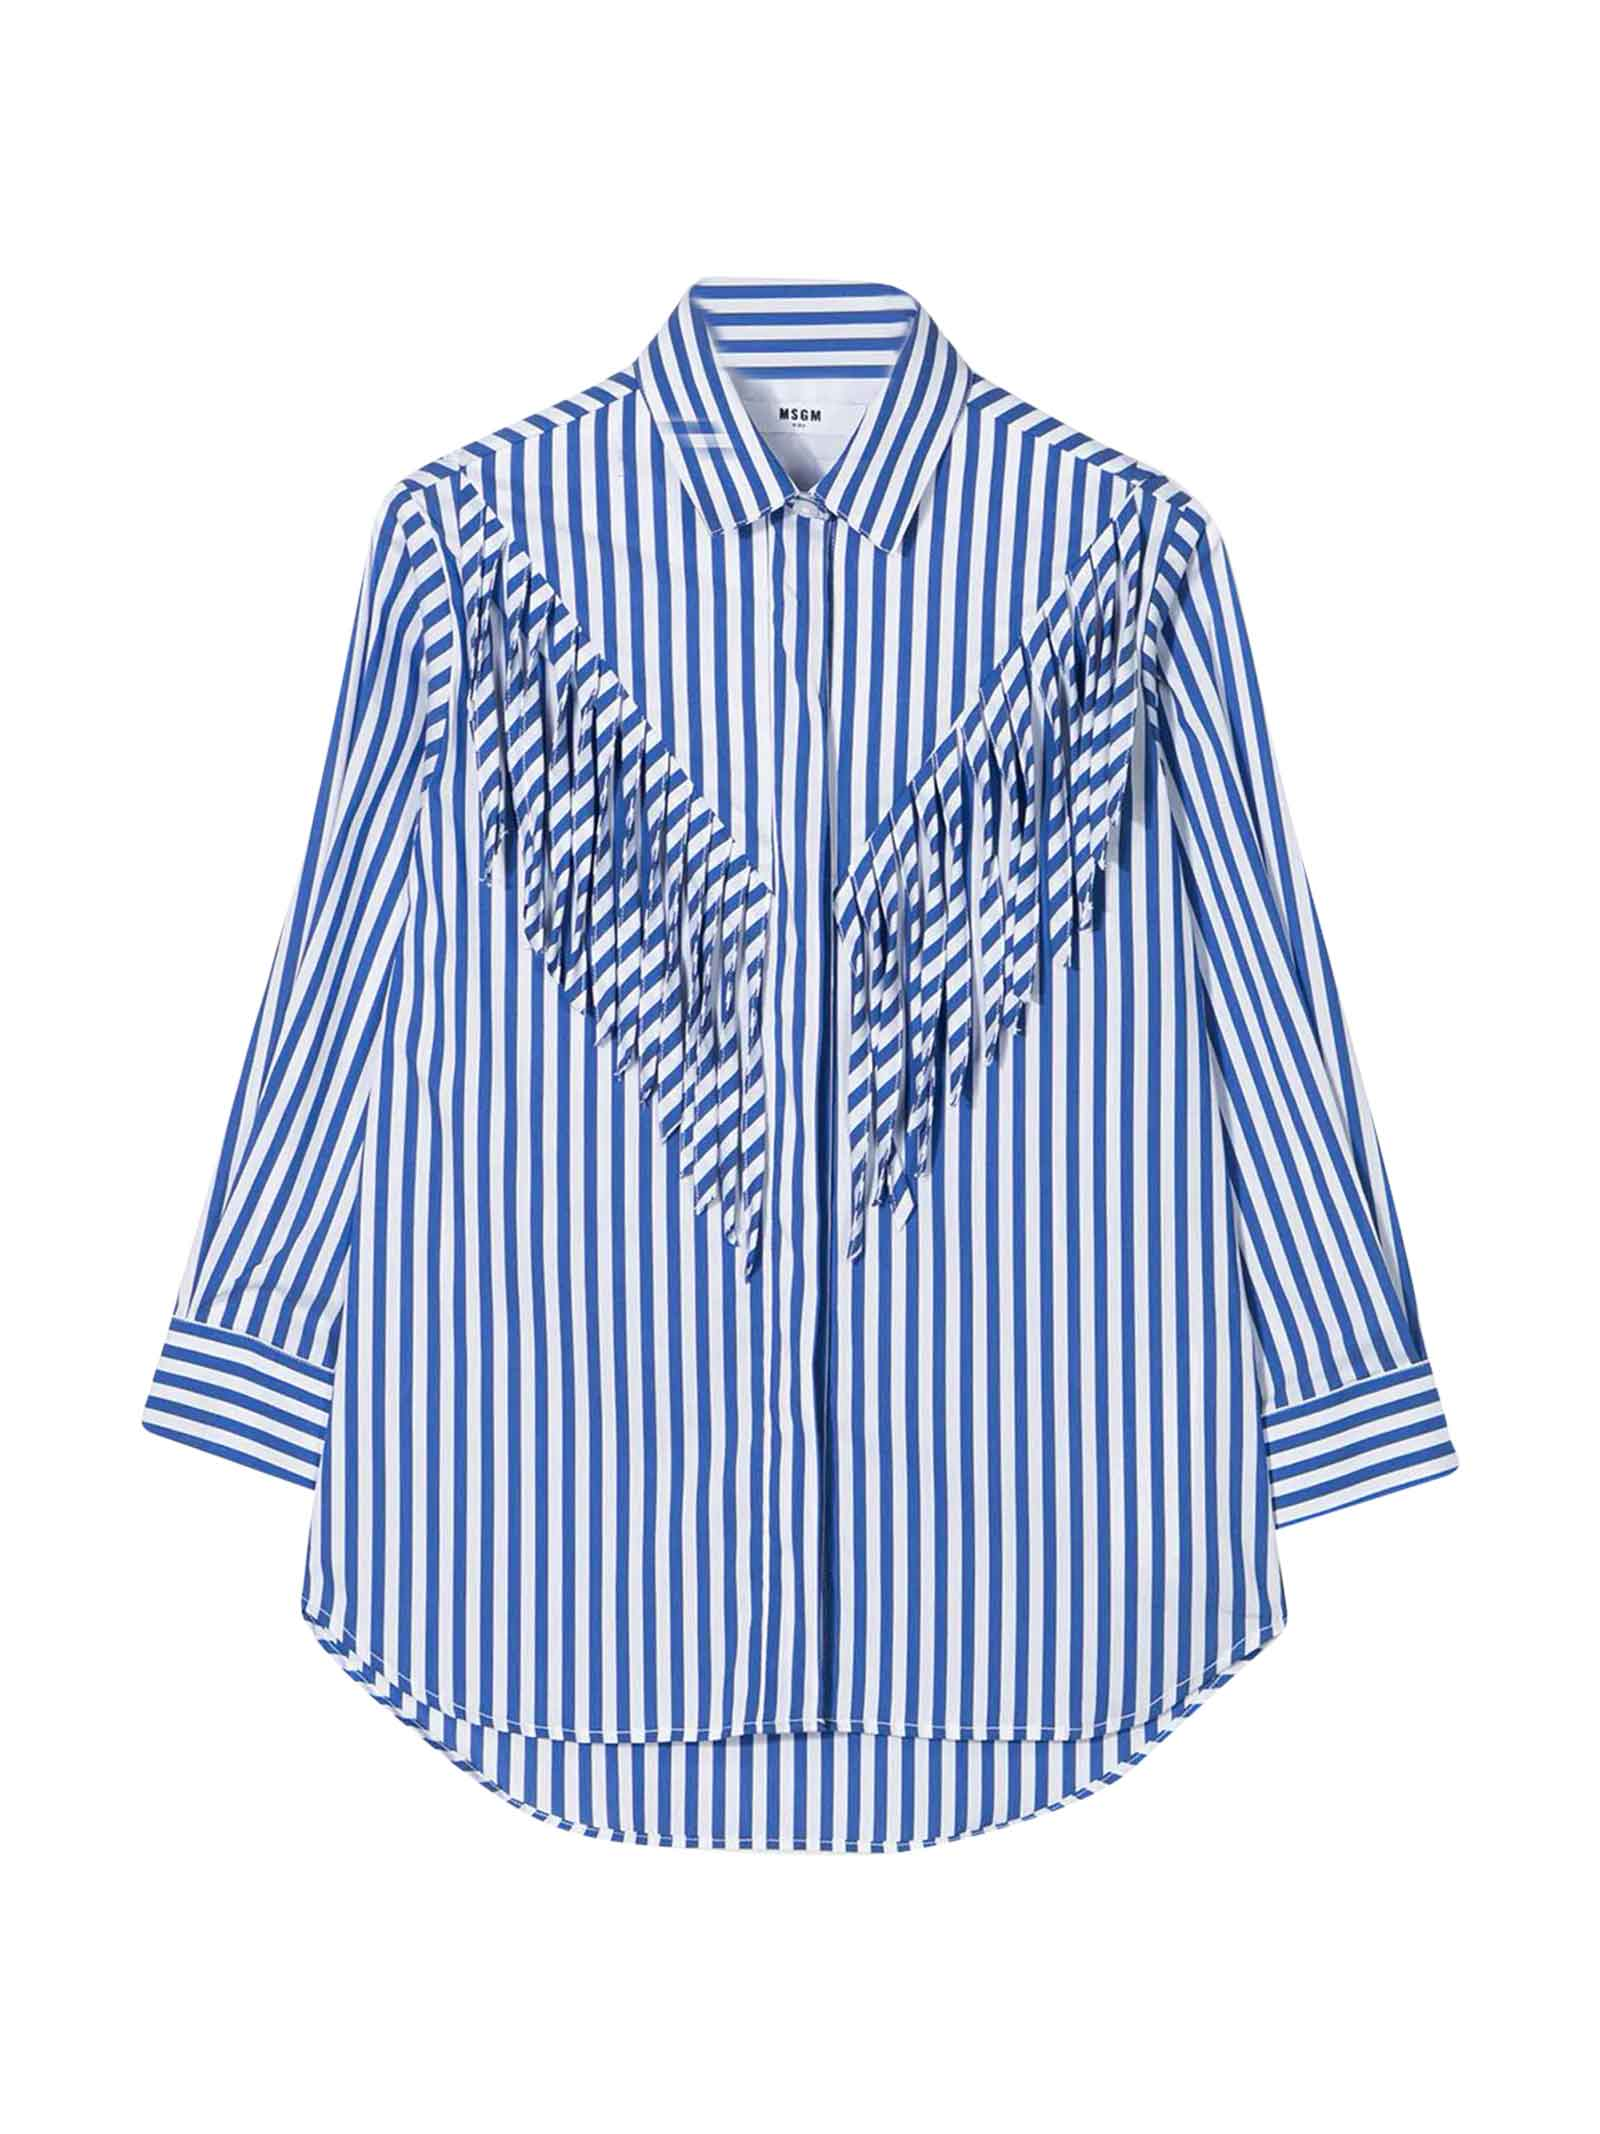 Msgm WHITE SHIRT WITH BLUE STRIPED